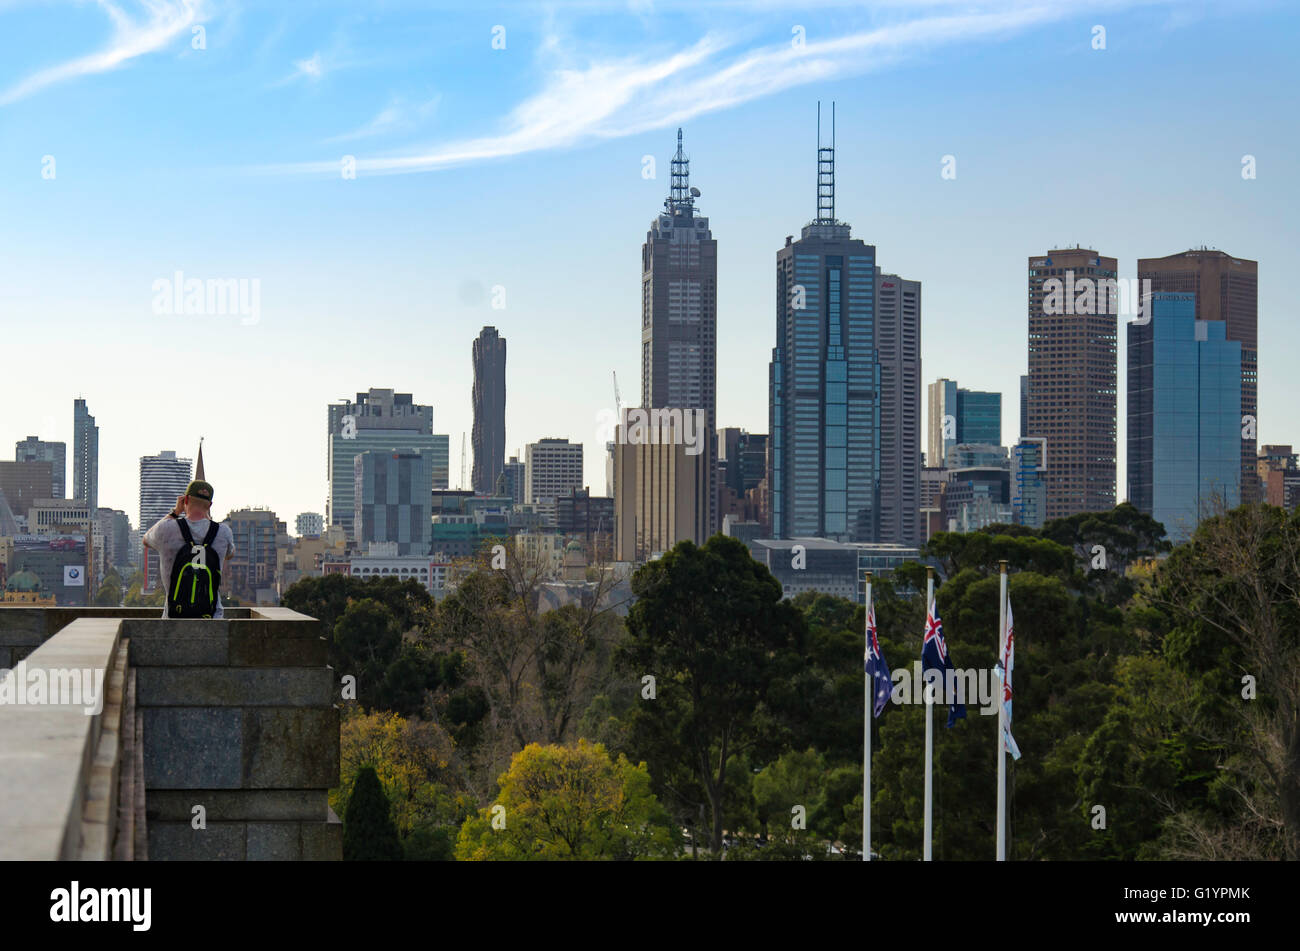 Views of Melbourne CBD from the World War 1 Shrine of Remembrance in Melbourne, Victoria, Australia - Stock Image